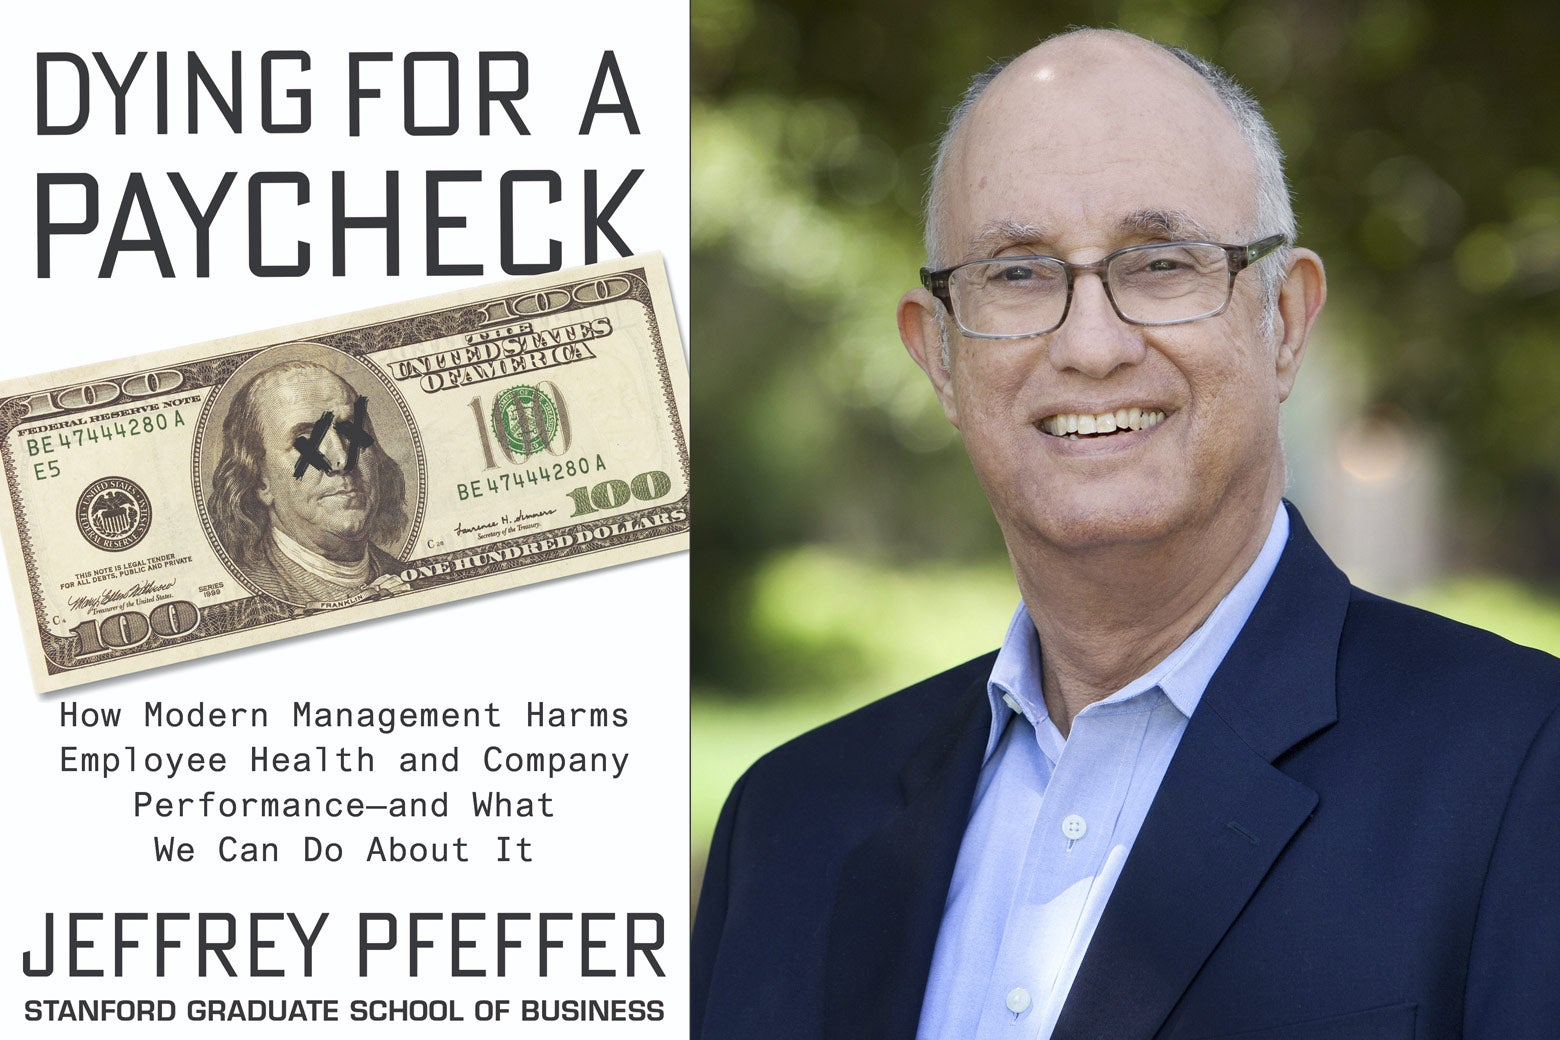 The book cover for Dying for a Paycheck and author Jeffrey Pfeffer.